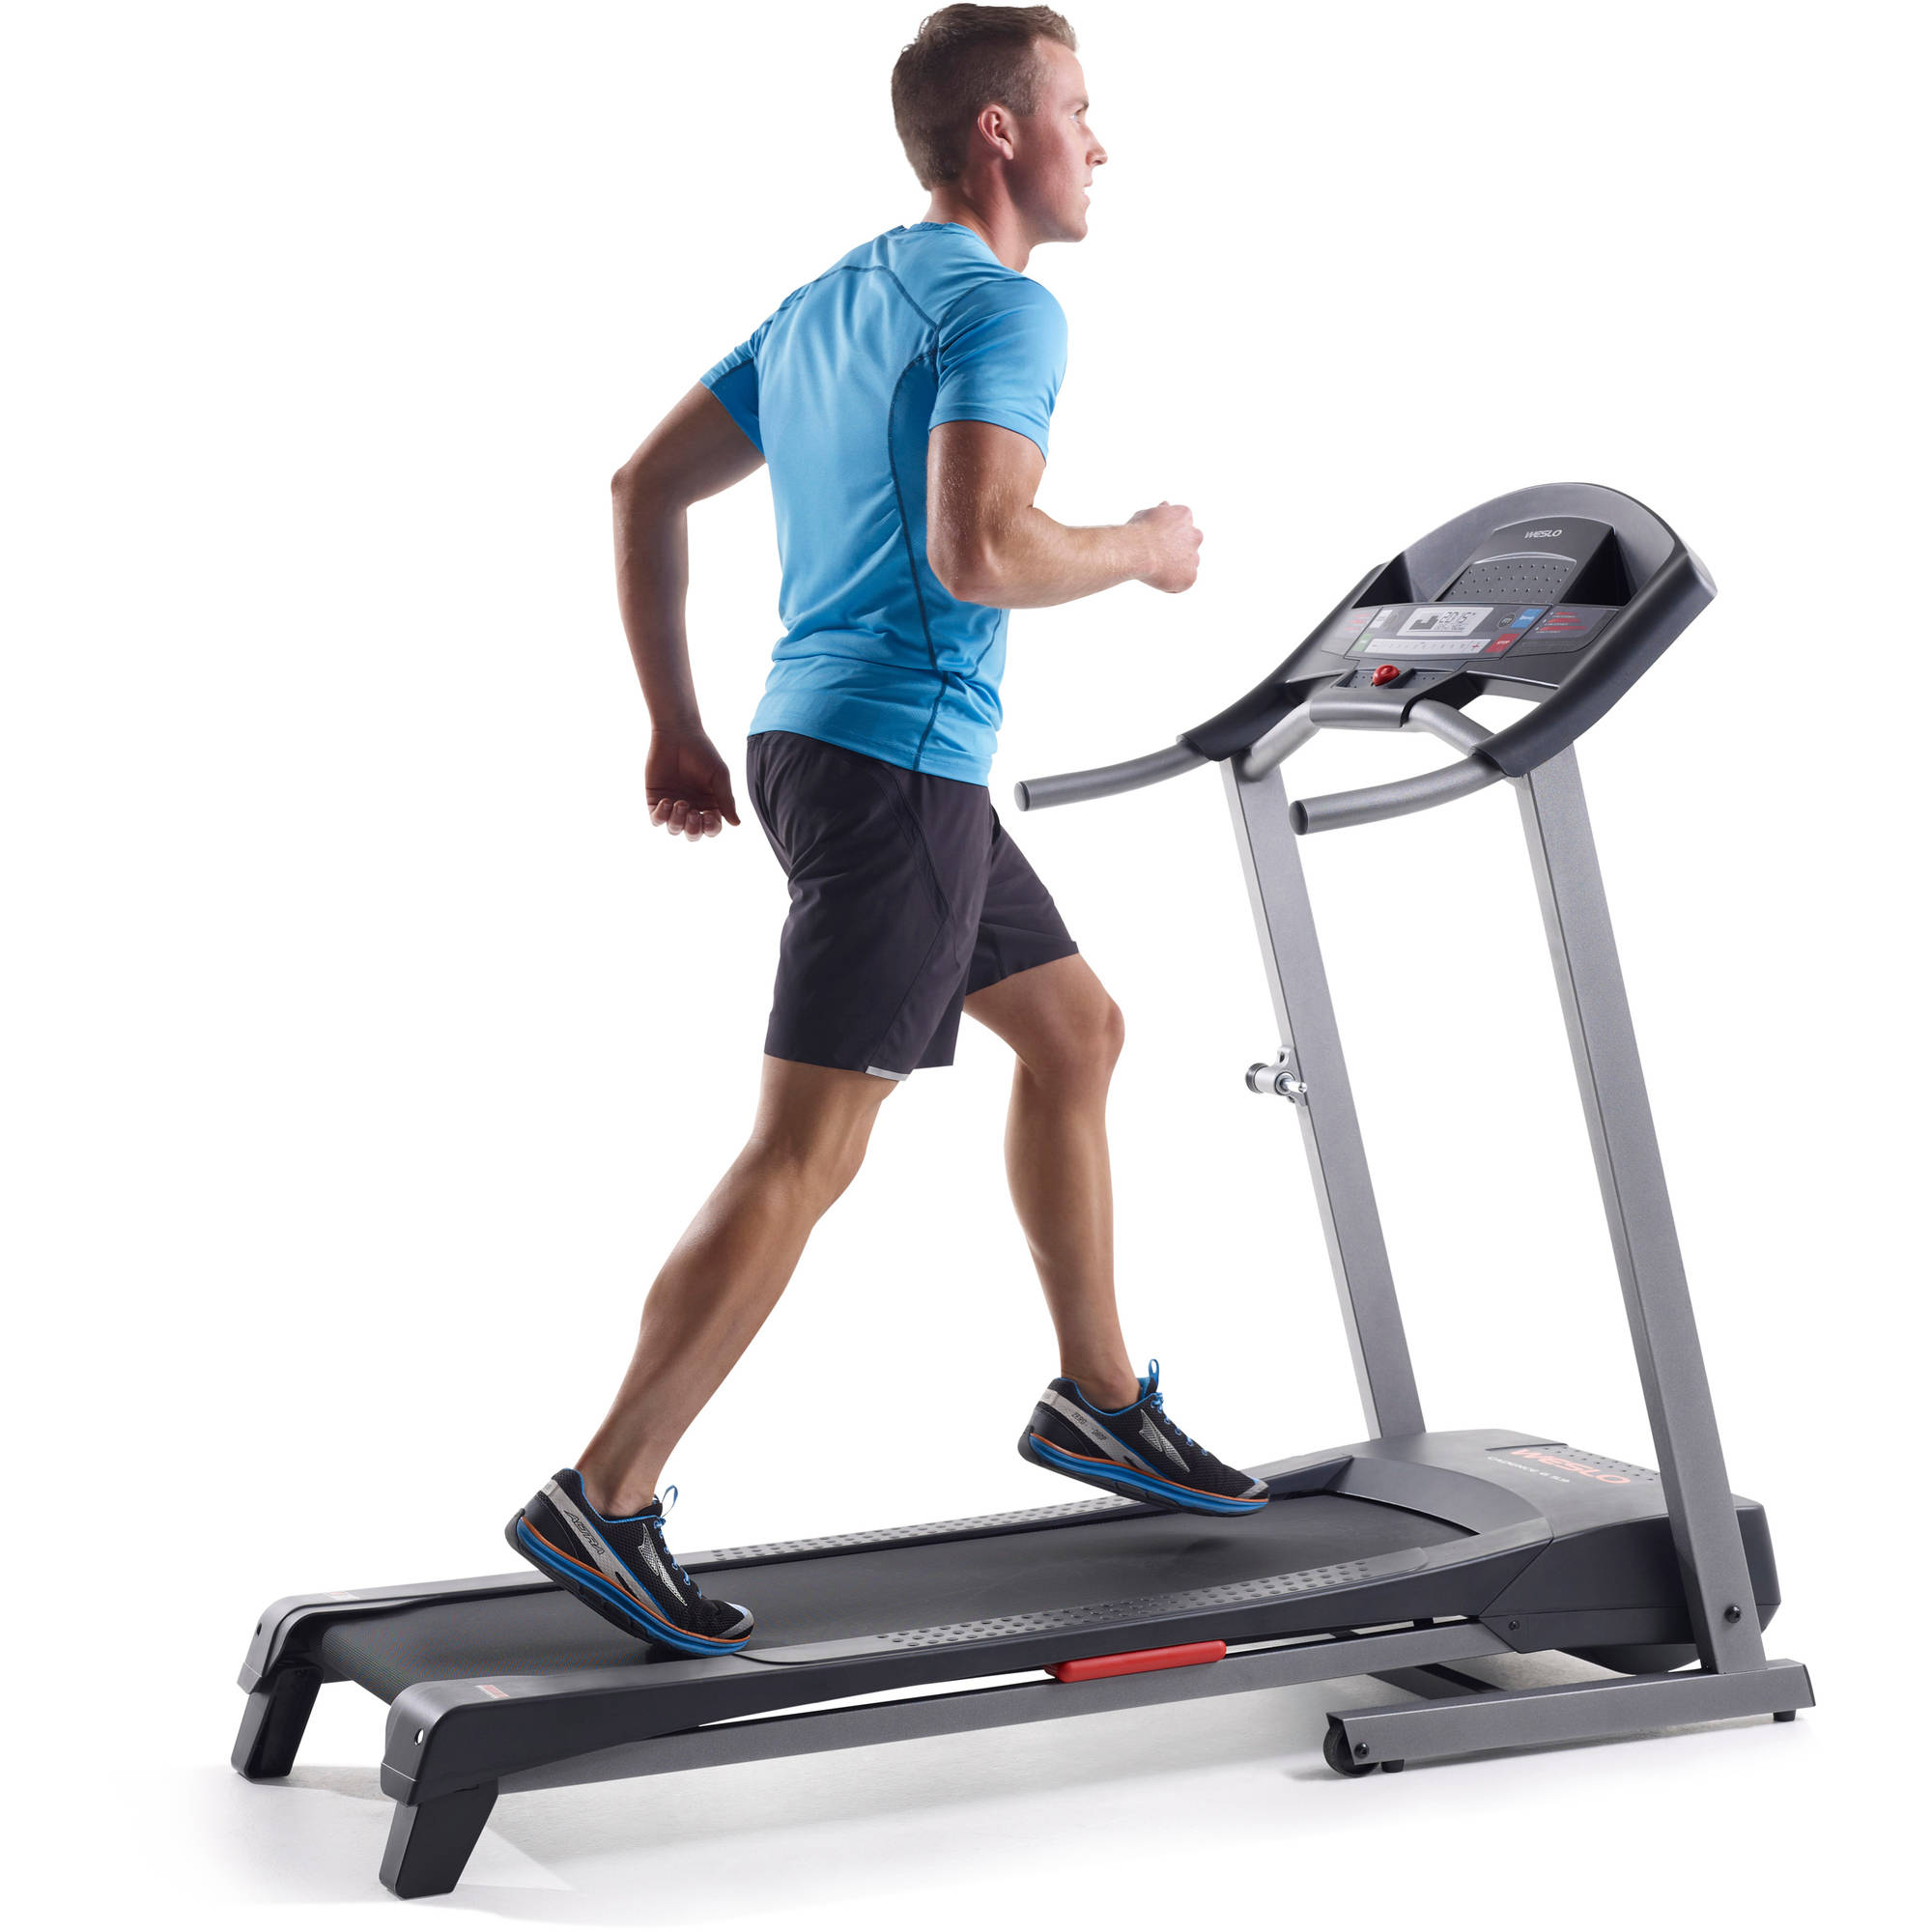 Weslo Cadence G 5.9i Folding Treadmill, New Model